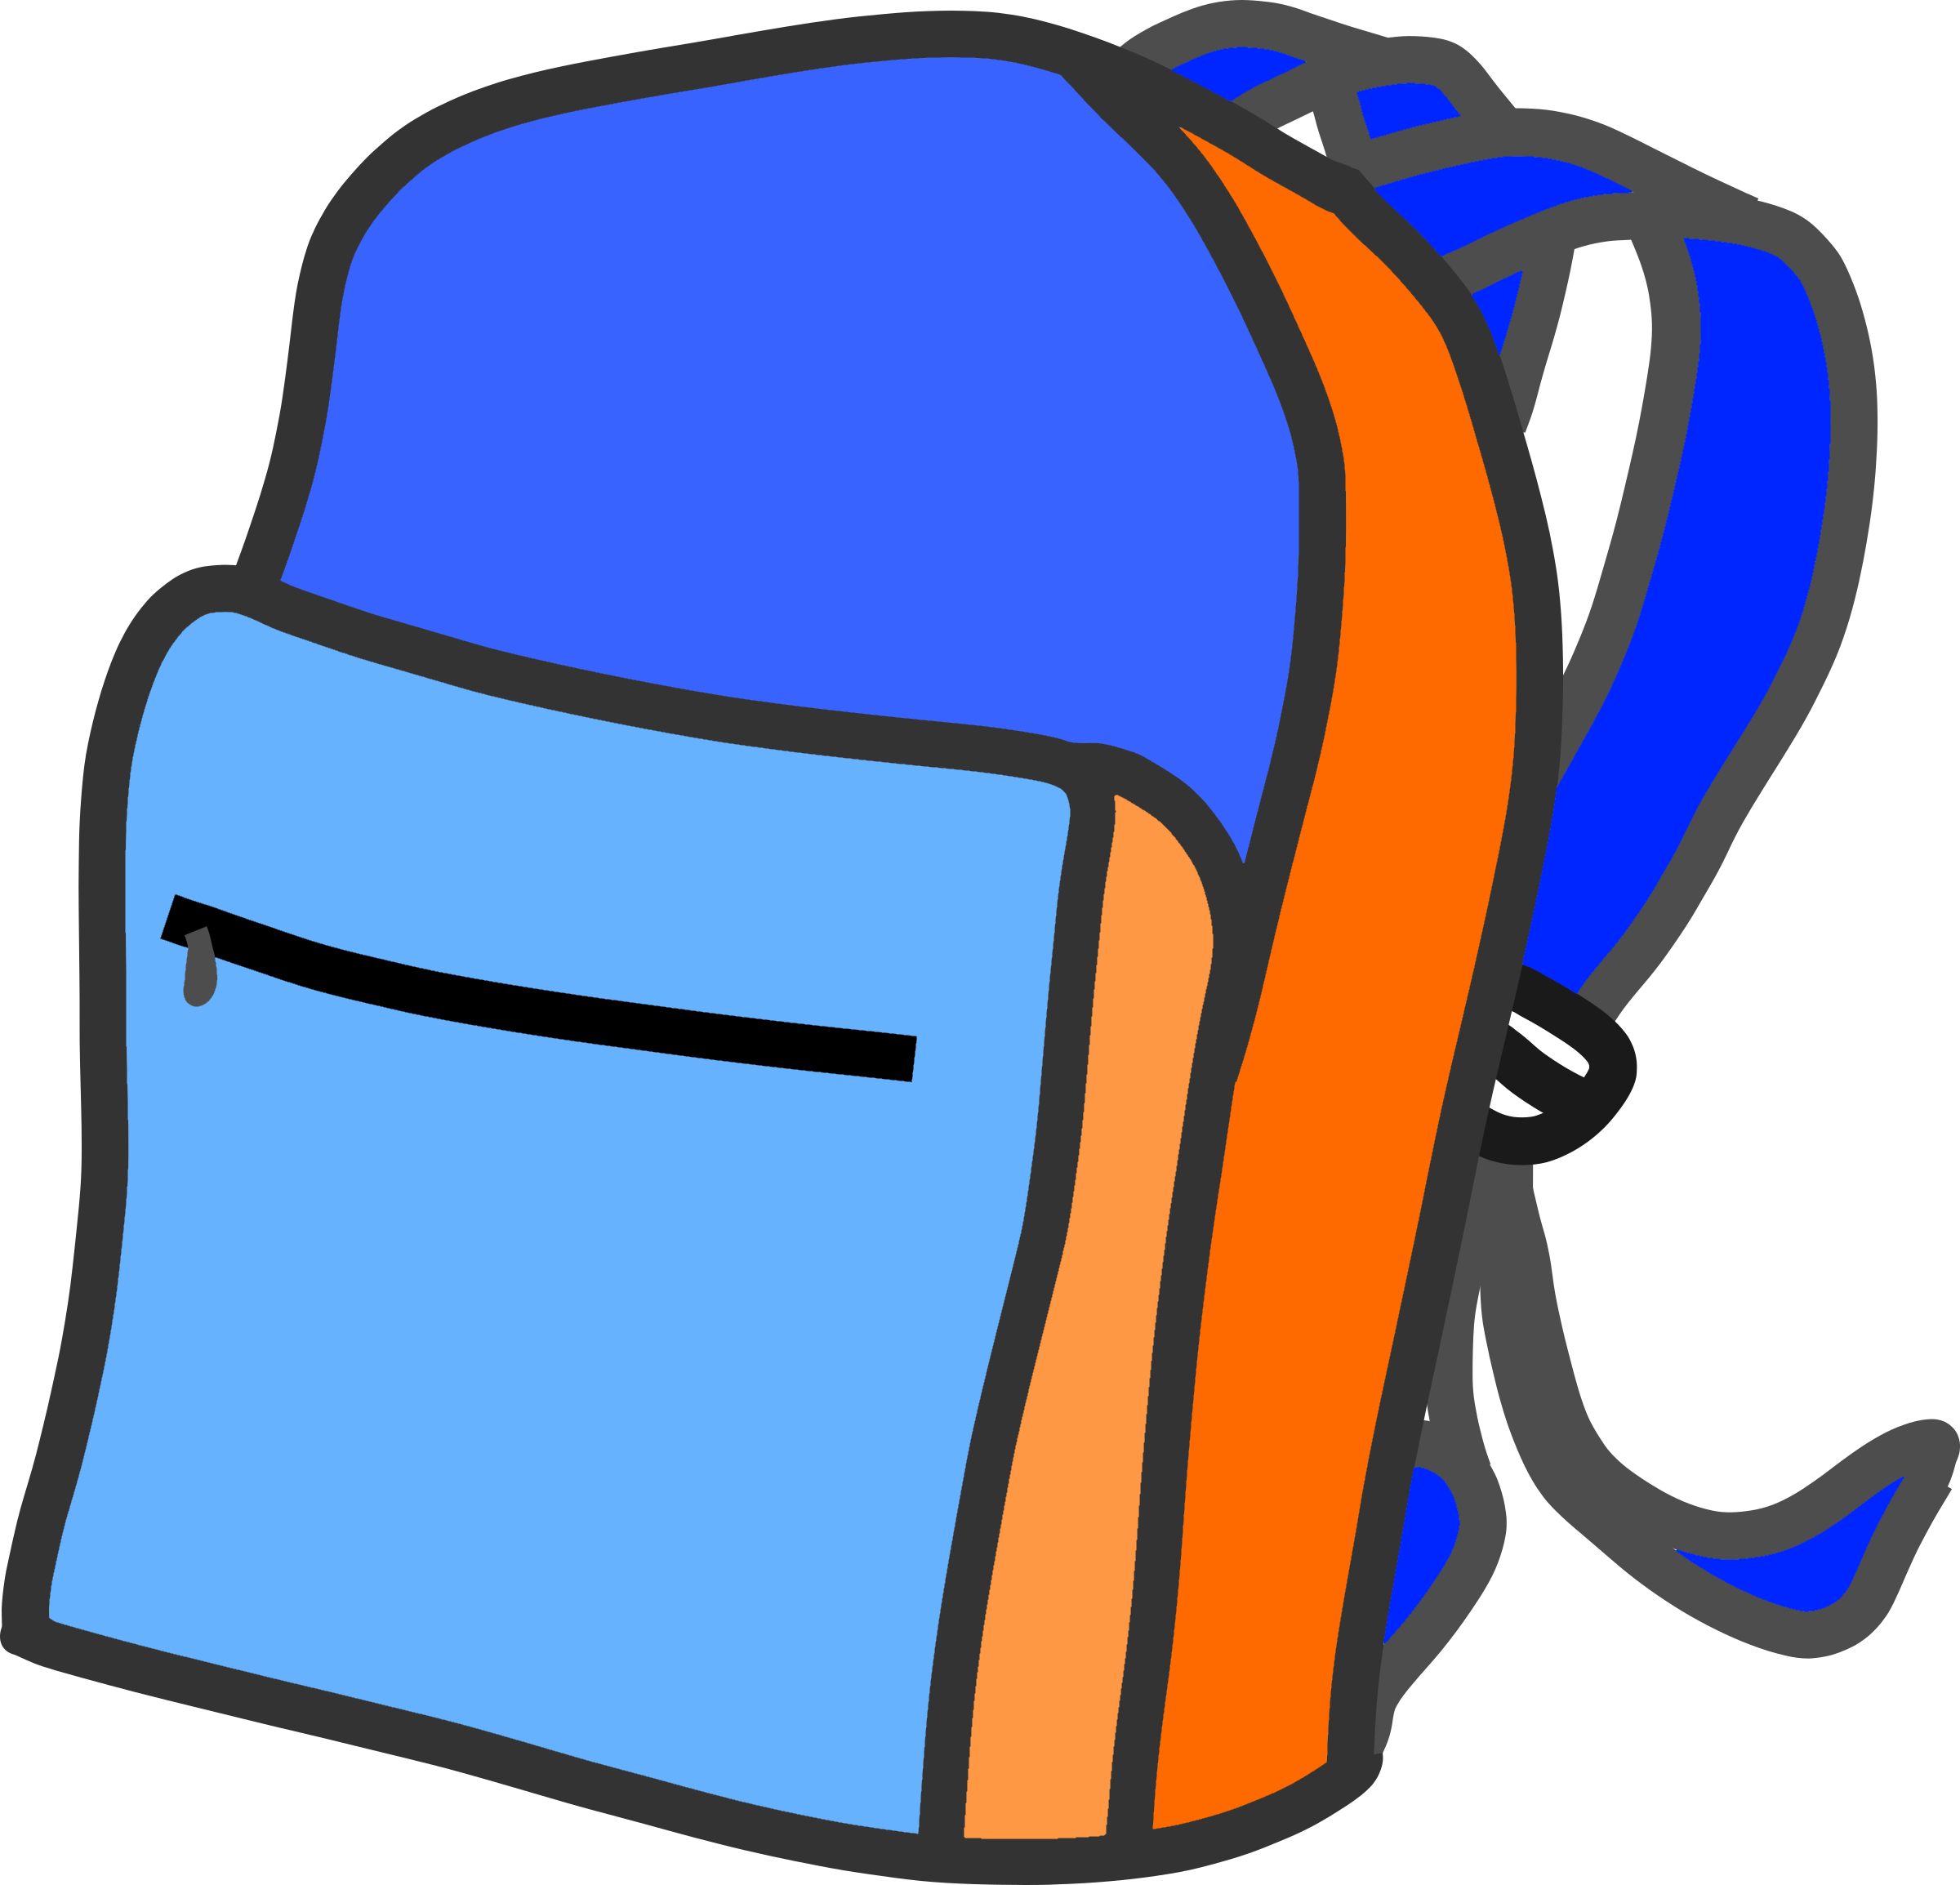 School backpack by Ilex